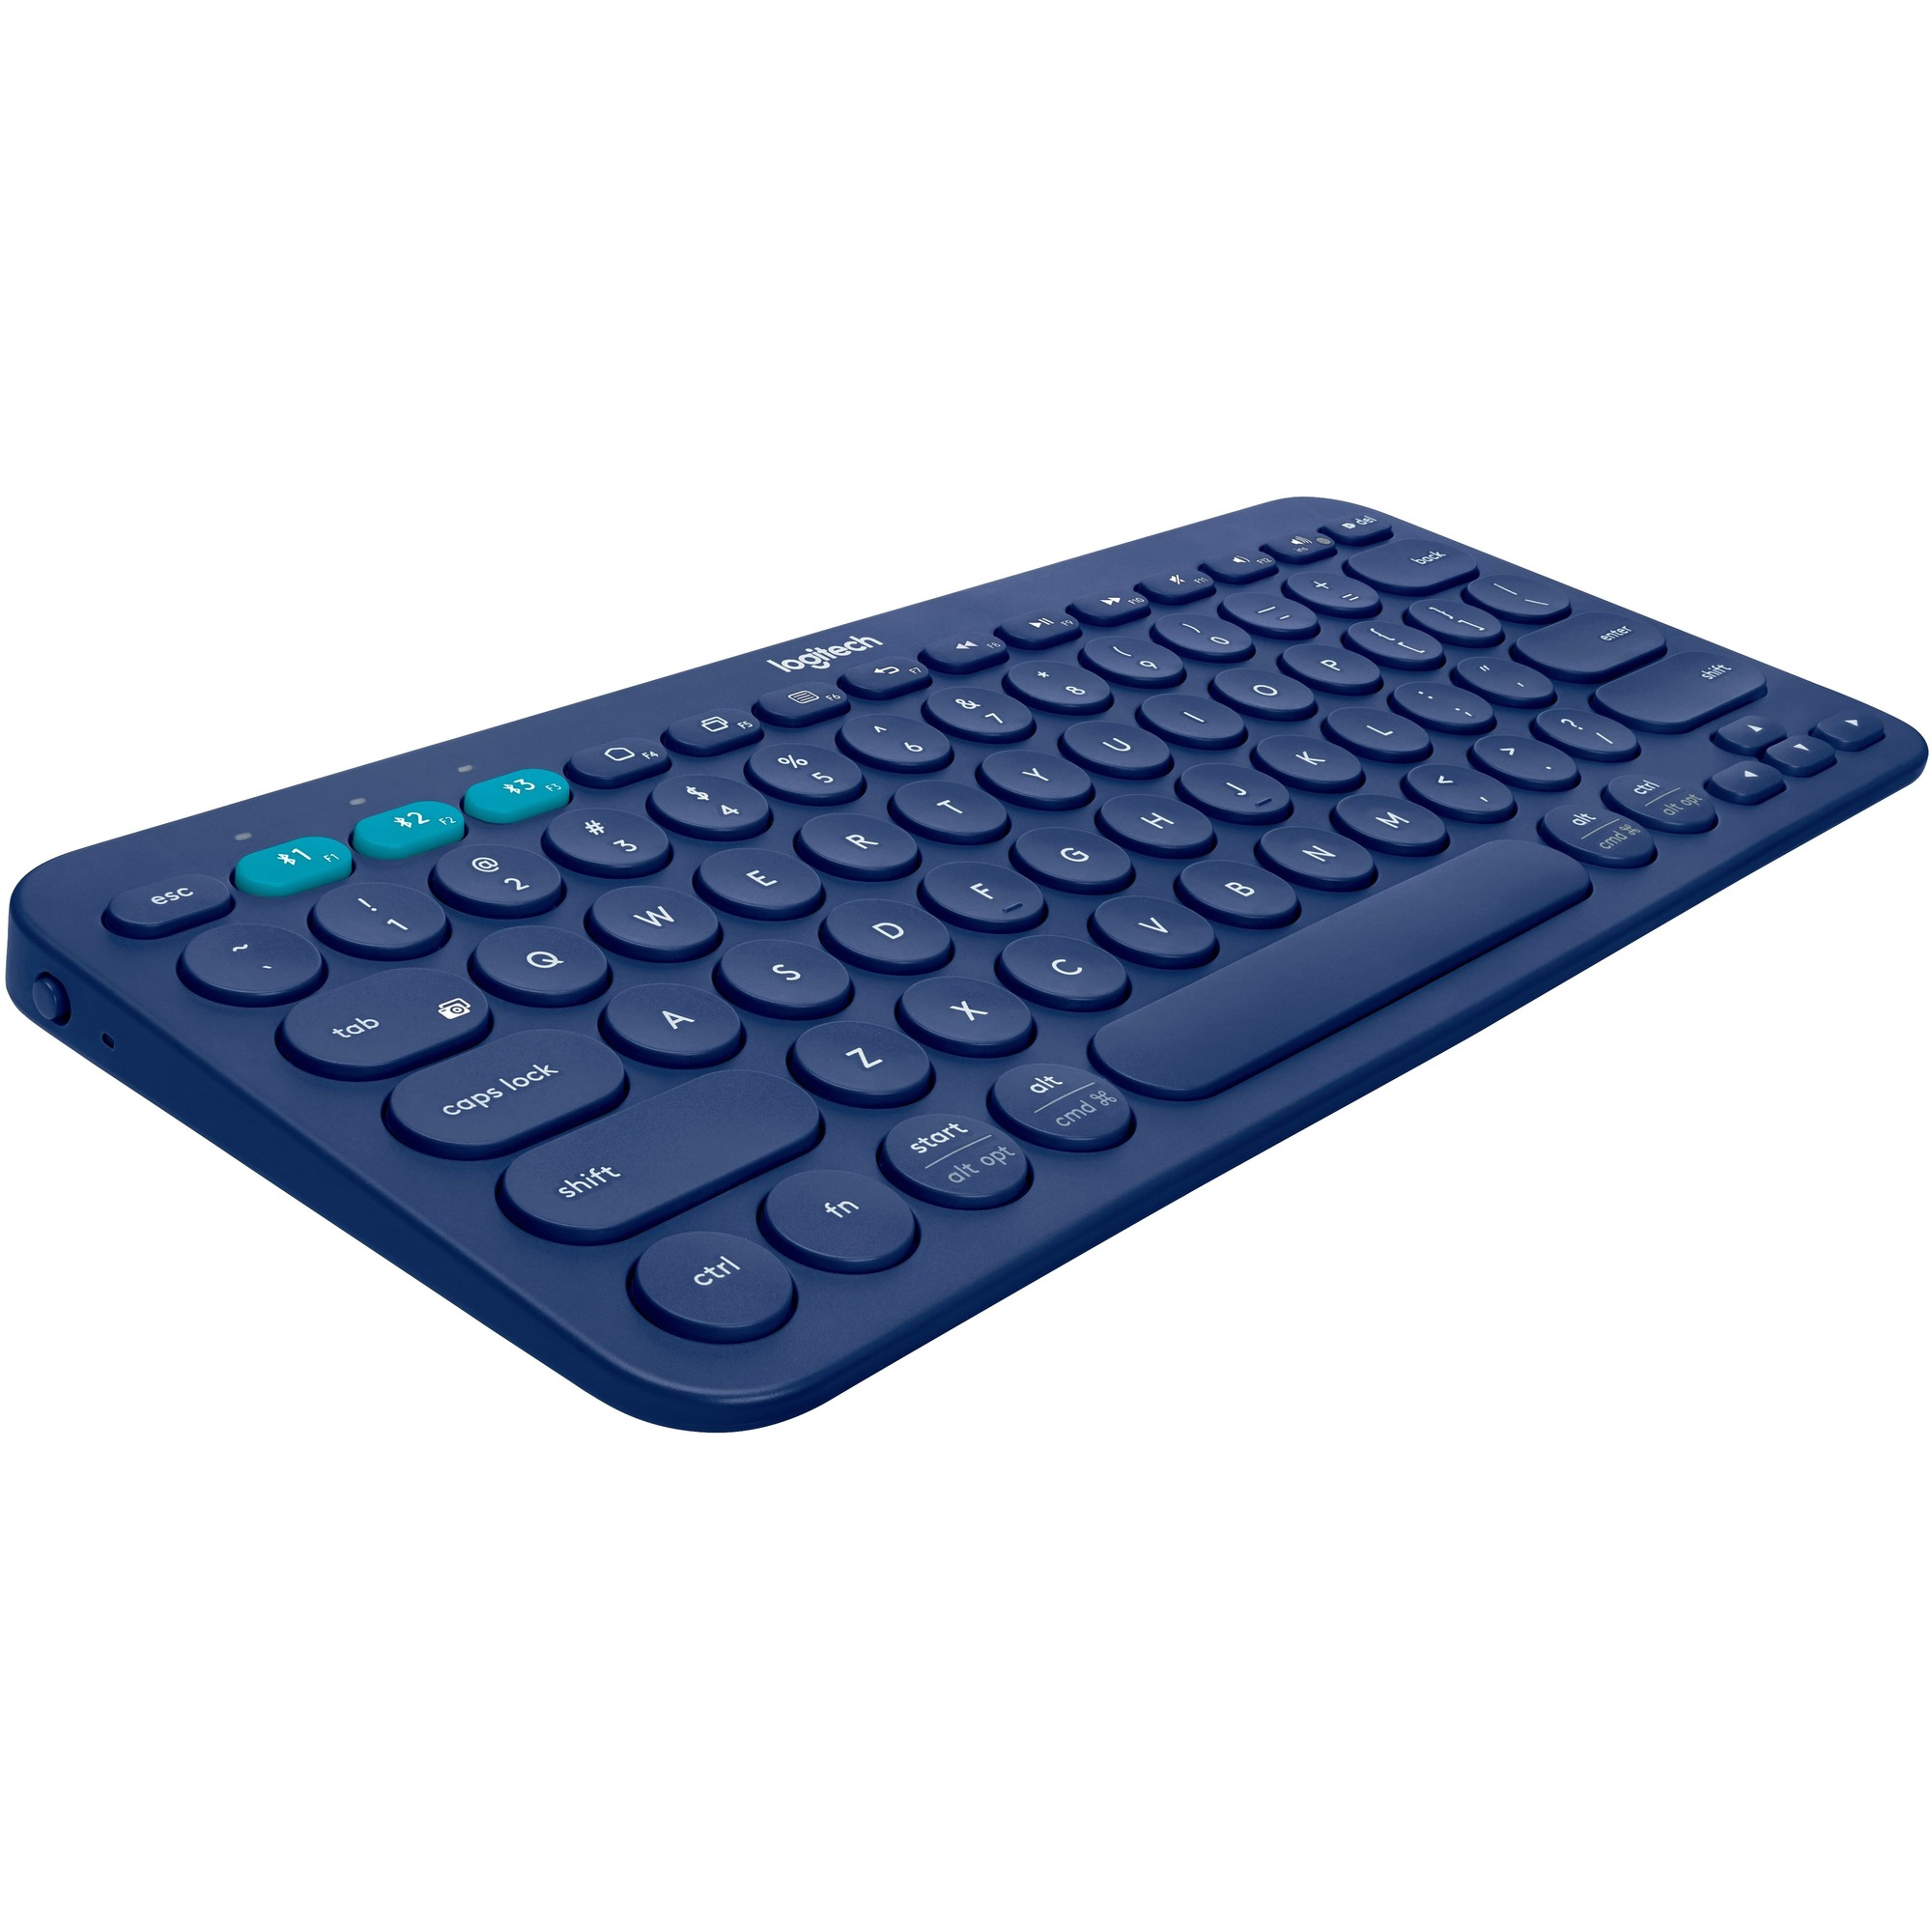 Logitech K380 Keyboard - Wireless Connectivity - Bluetooth - Blue